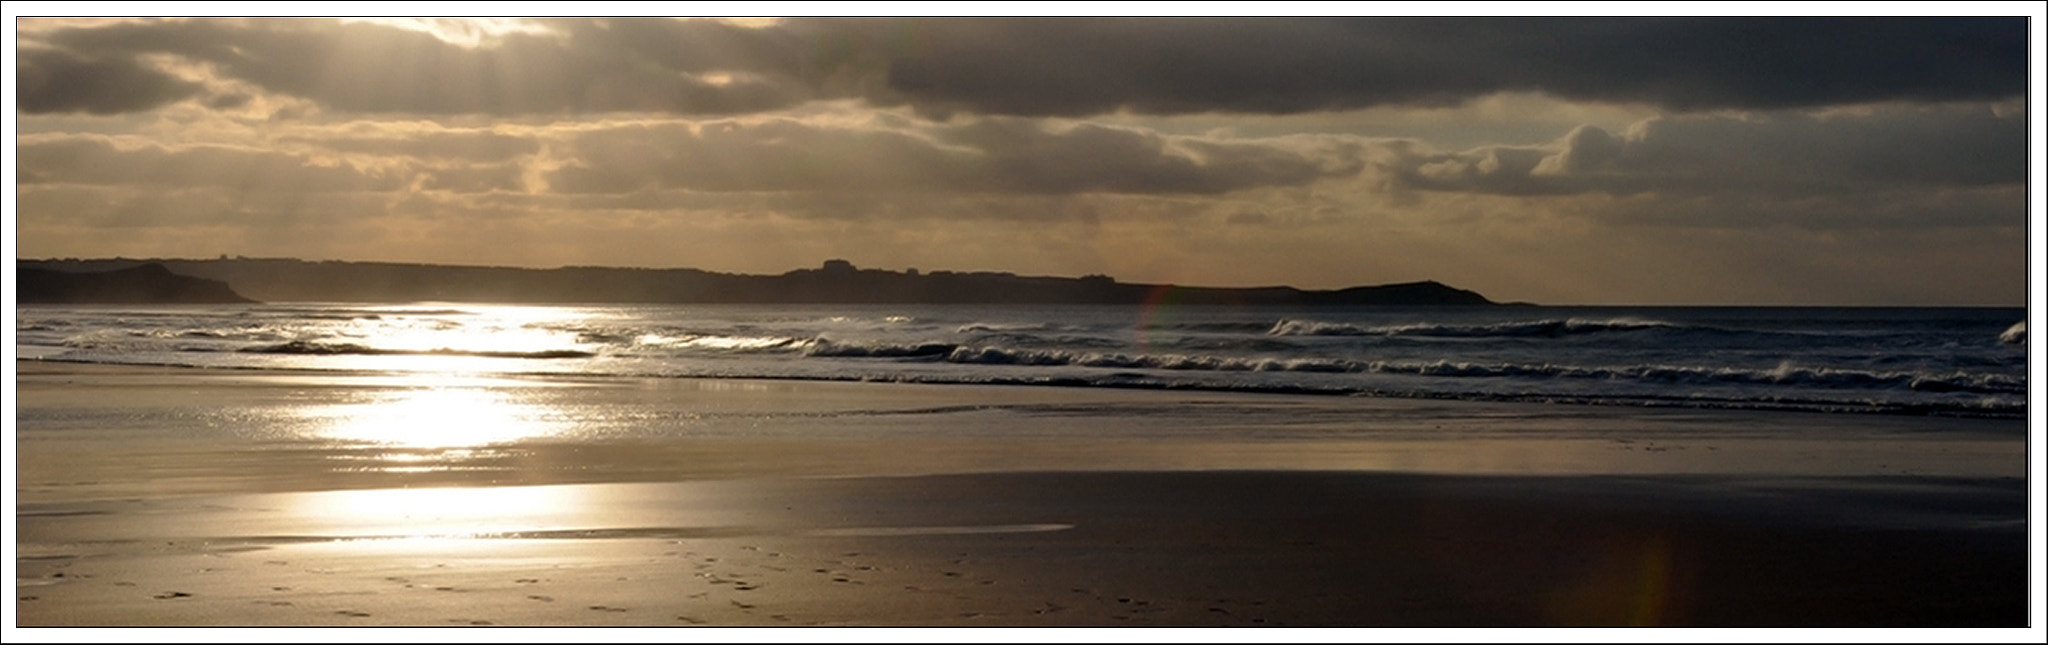 Photograph Watergate Bay, Cornwall by Ian Cocklin on 500px